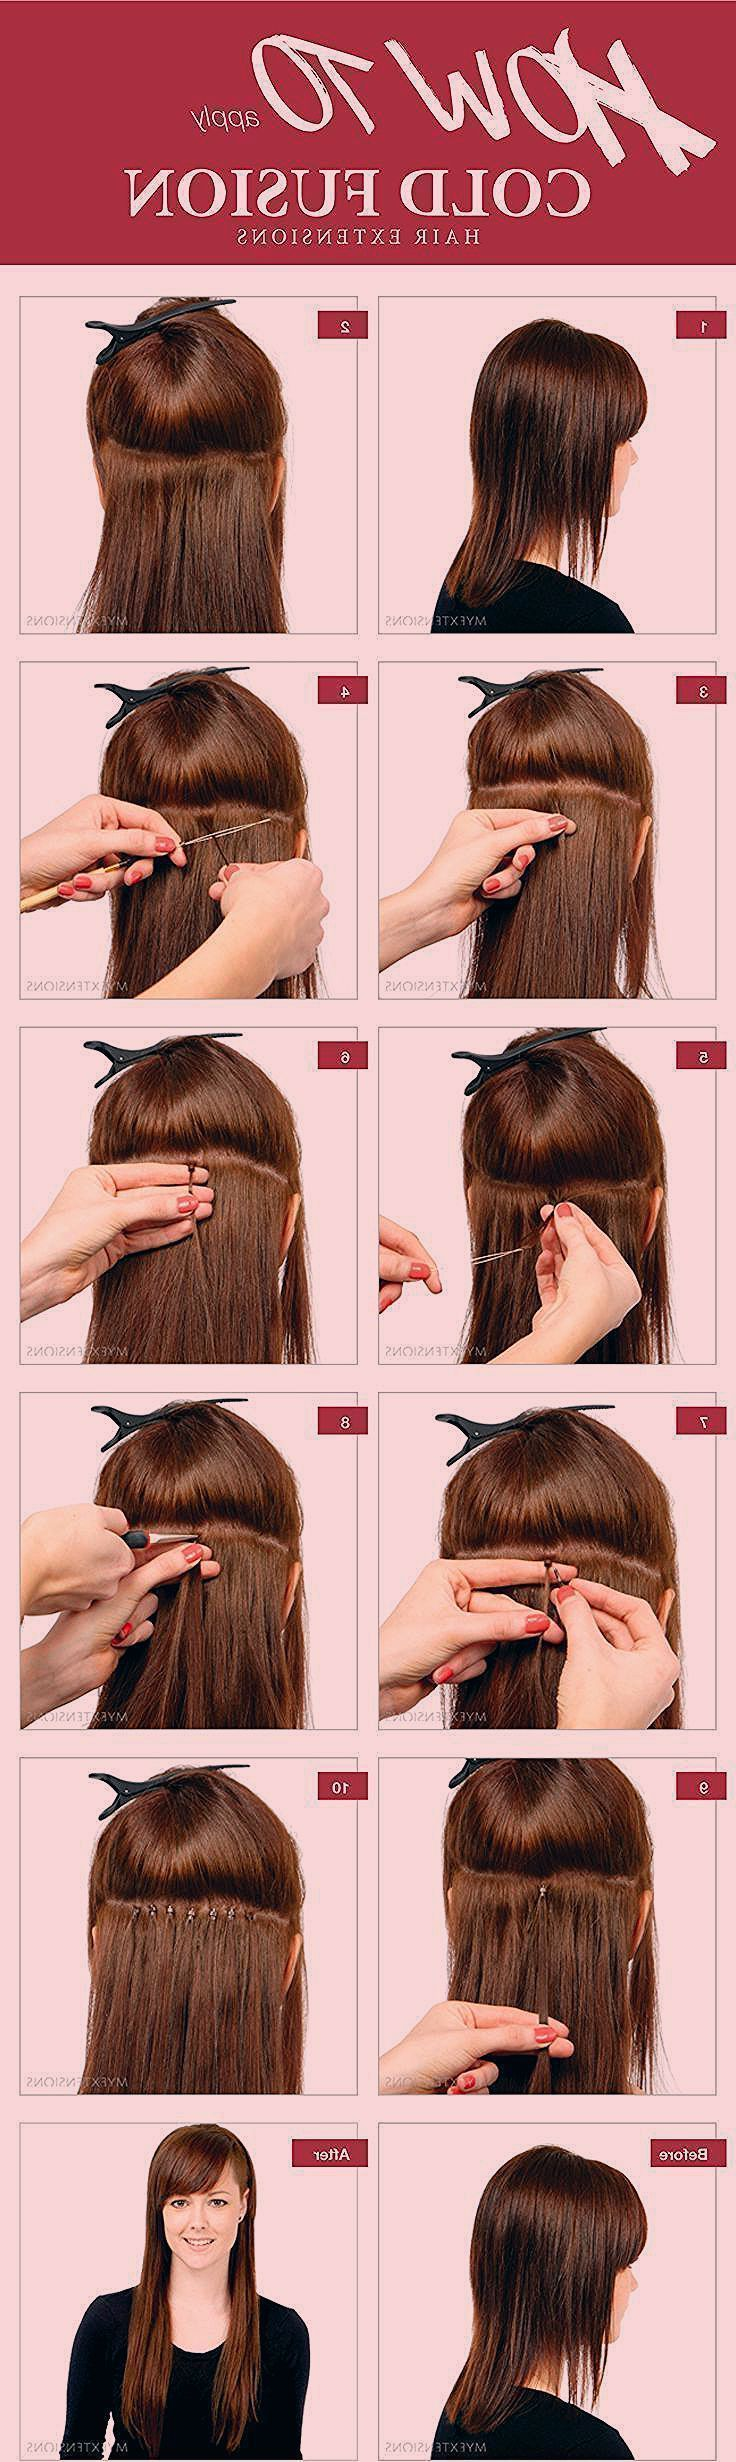 how to put in hair extensions at home